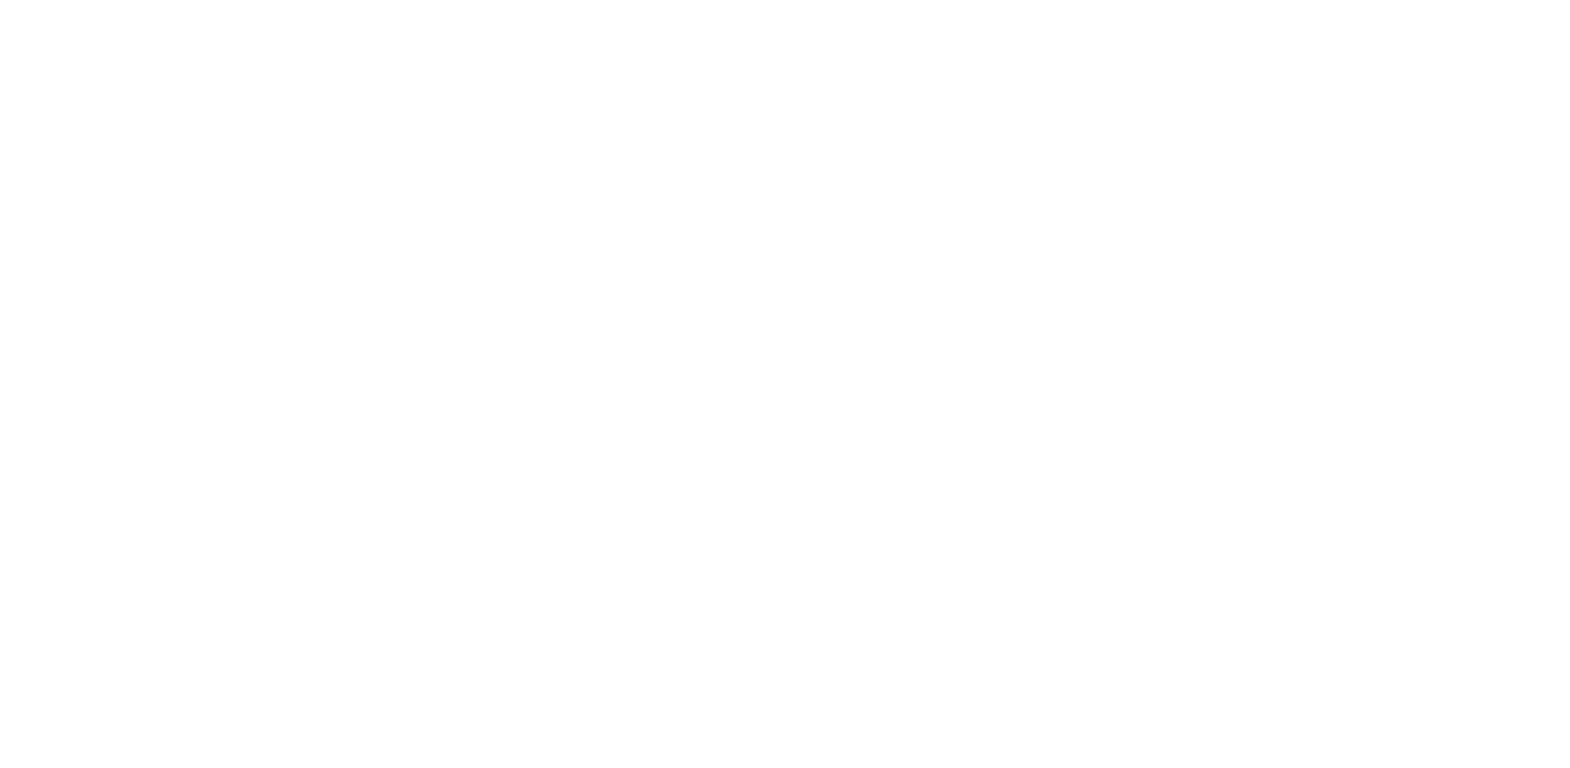 Frost border png. Celtic noise records